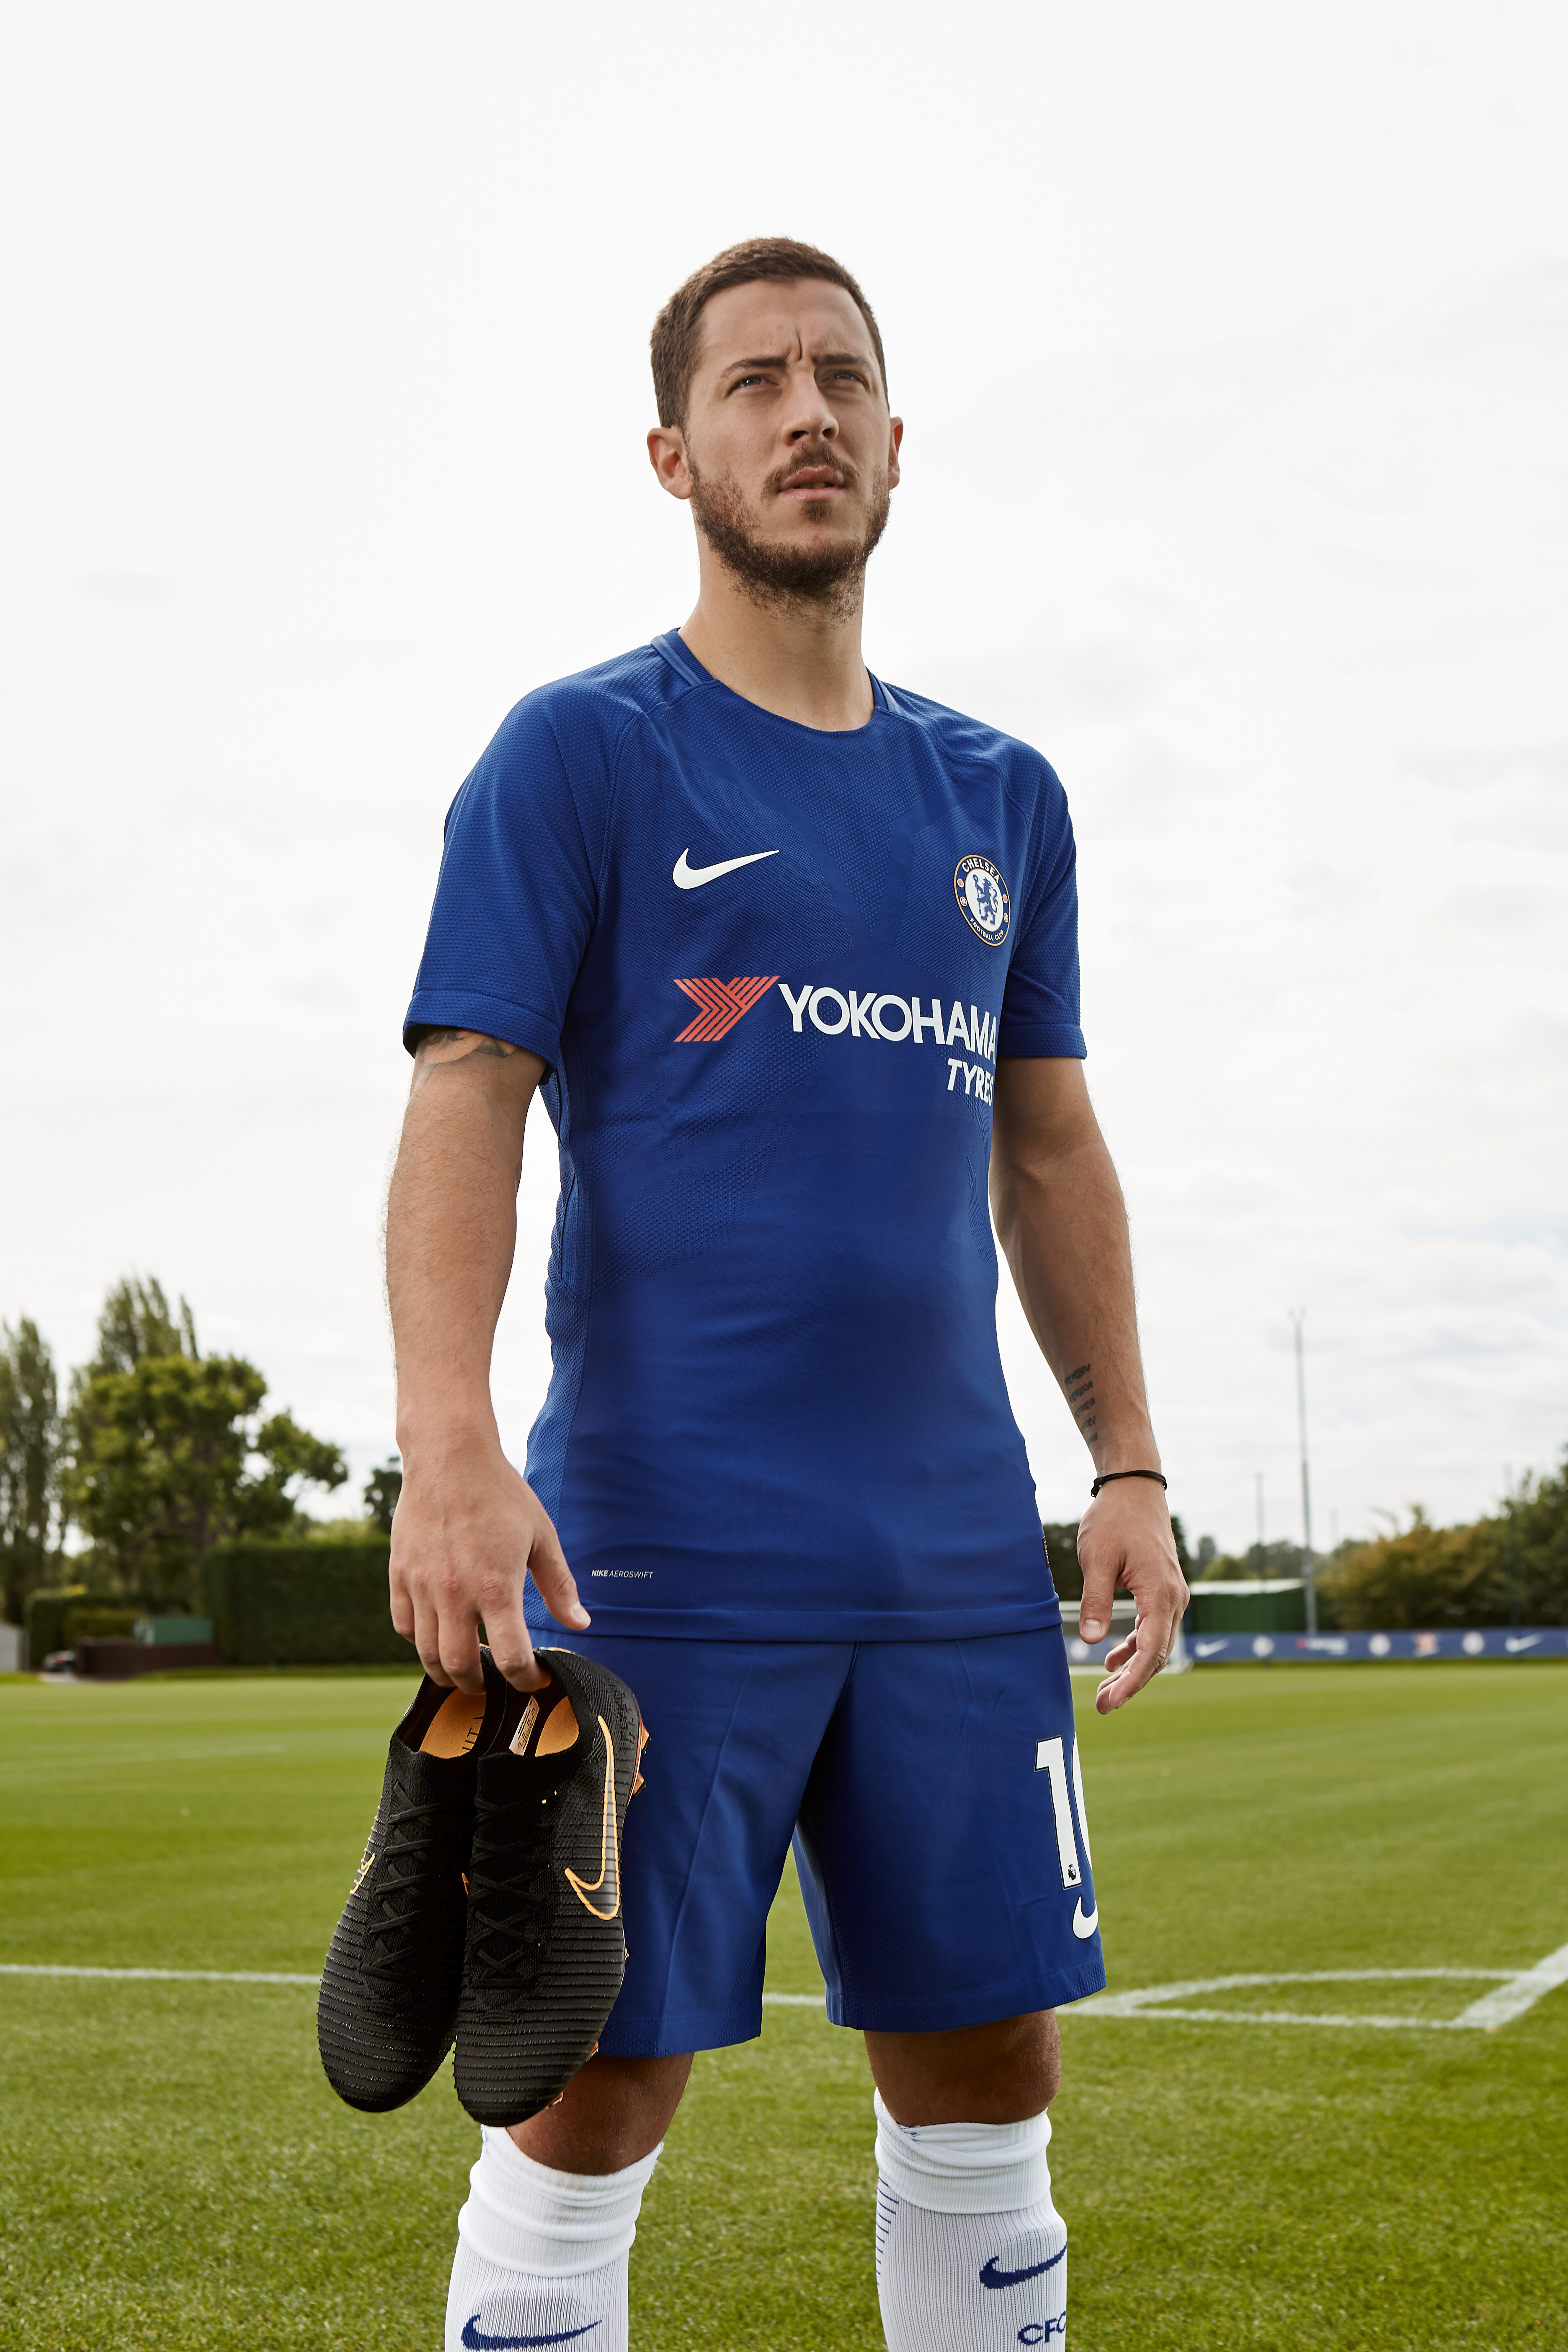 62392d895 Eden Hazard's brand new Nike Mercurial Ultra Flyknit Vapor boots |  promotional images from: Nike